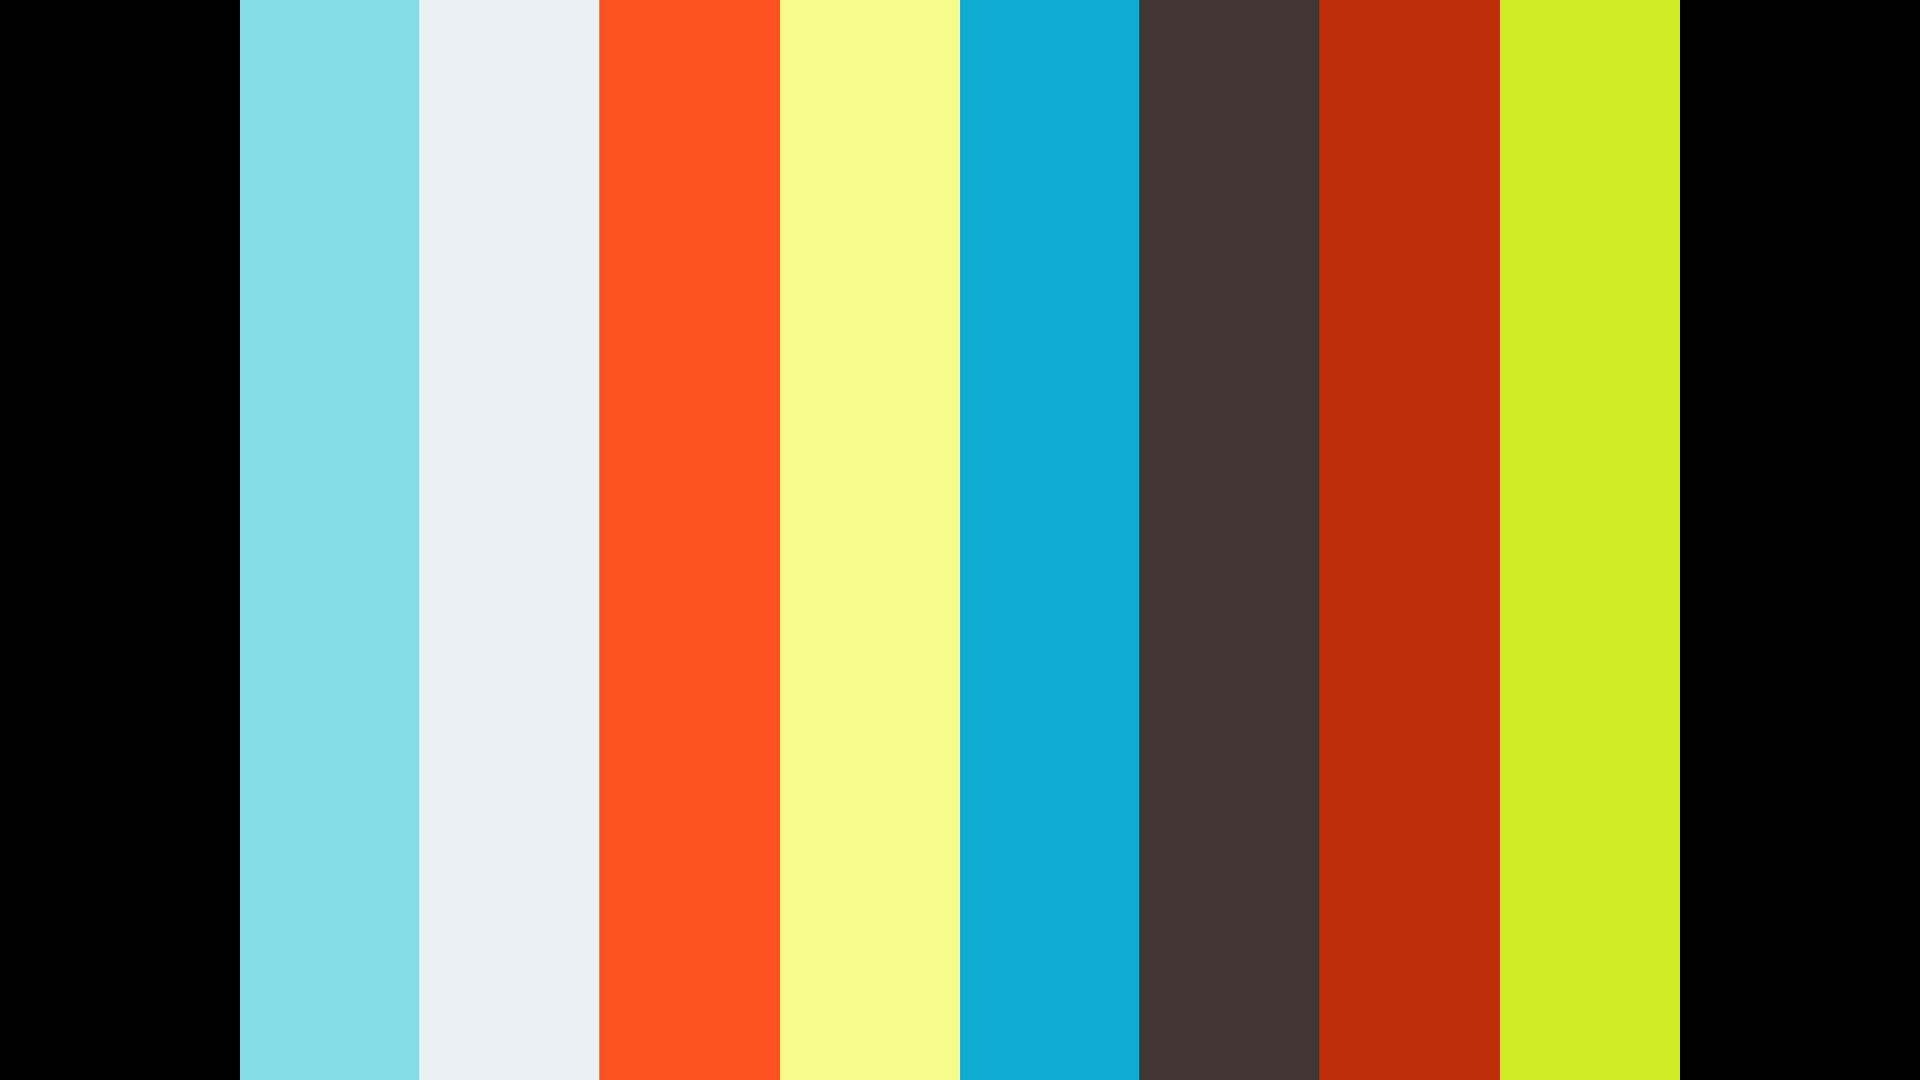 Building Community Through Building Relationships